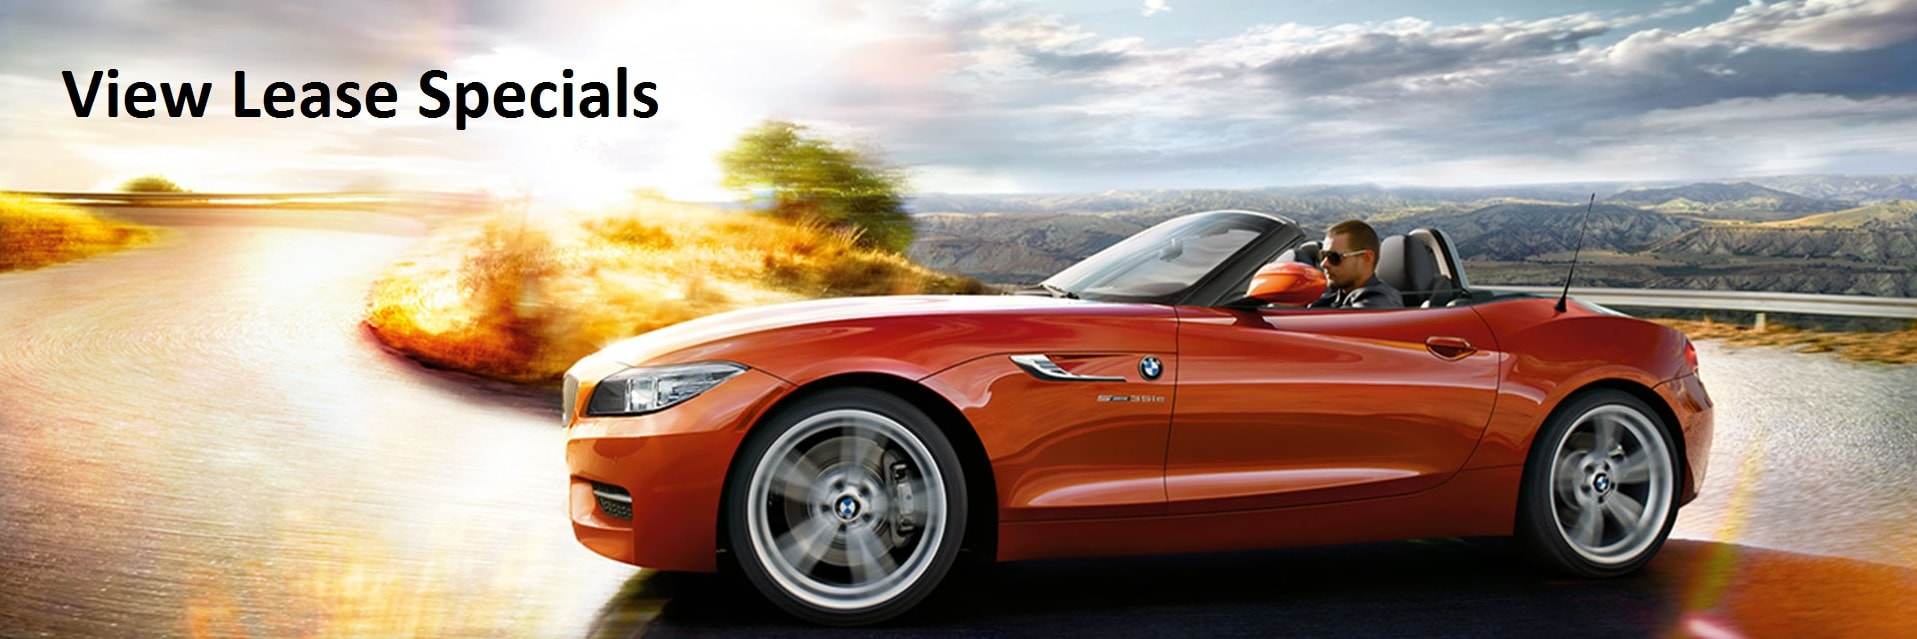 Bmw Z4 2017 Lease New Cars Gallery